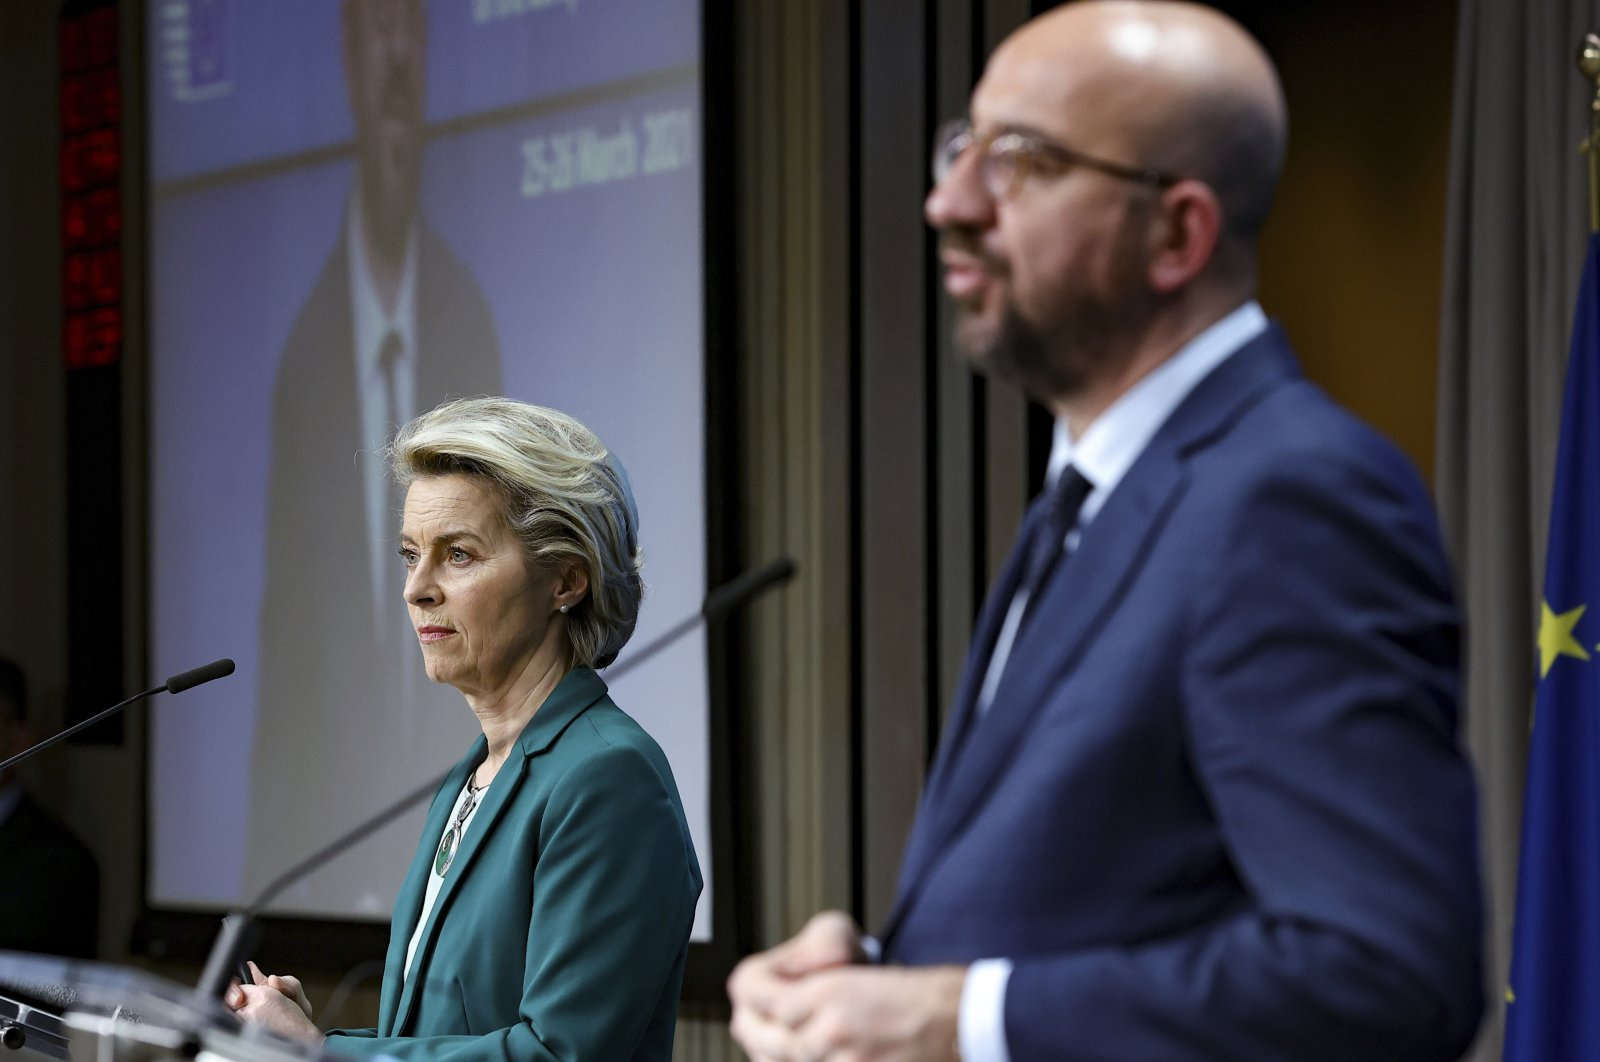 European Commission President Ursula von der Leyen (L), listens to European Council President Charles Michel during an online news conference at the end of an EU summit at the European Council building in Brussels, March 25, 2021. (AP Photo)